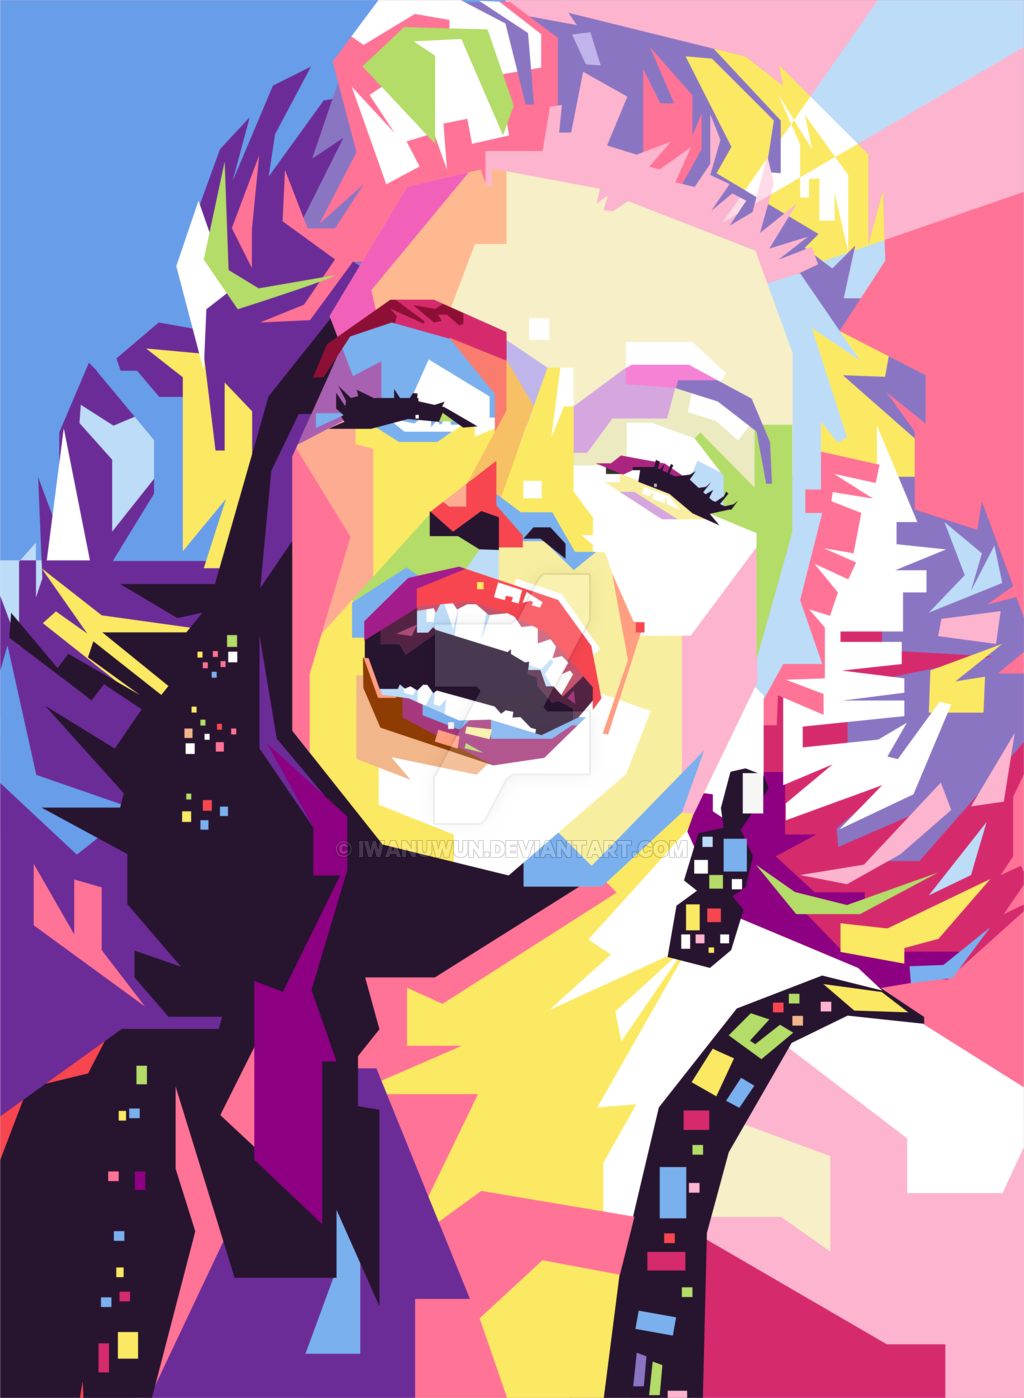 pinromario segovia on art | pinterest | marylin monroe